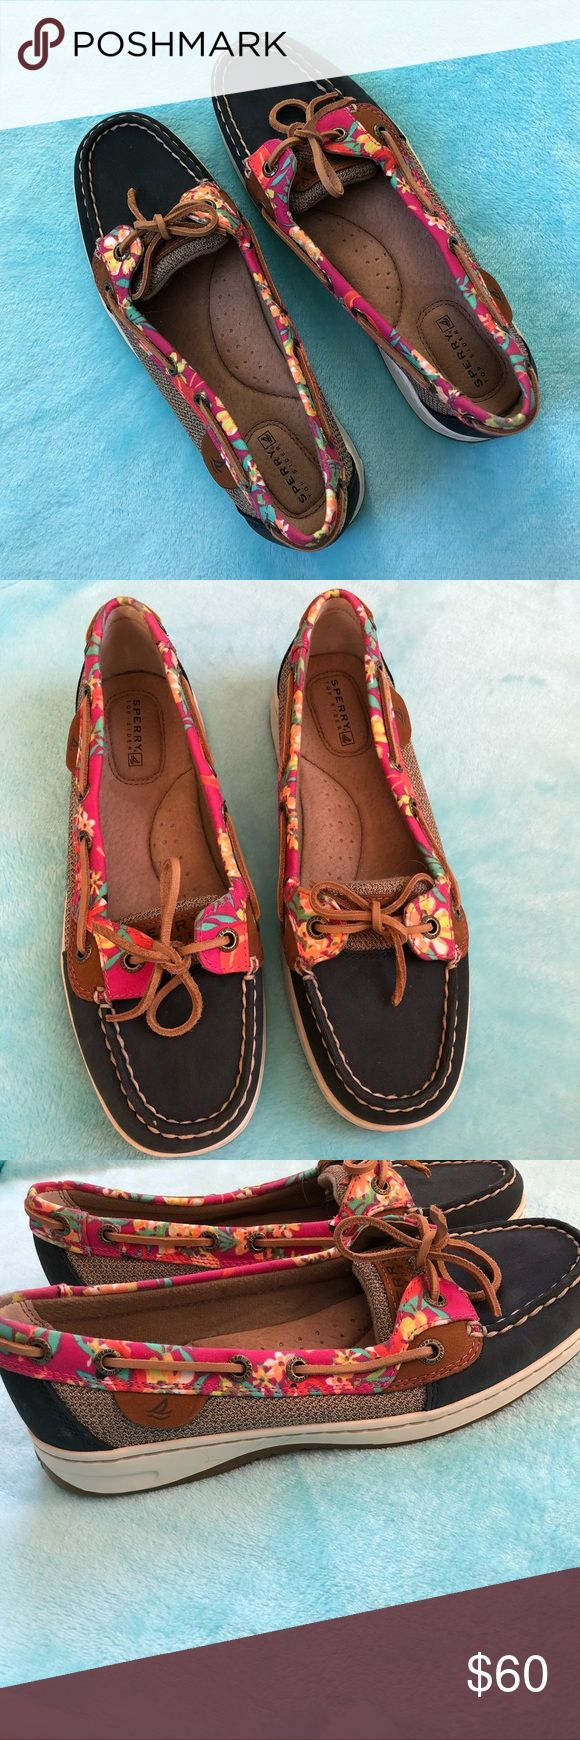 NWOT SPERRYS TOP SIDERS Does not include box but have never been worn. BRAND NEW! Size 7! Make me an offer :) Sperry Top-Sider Shoes Flats & Loafers